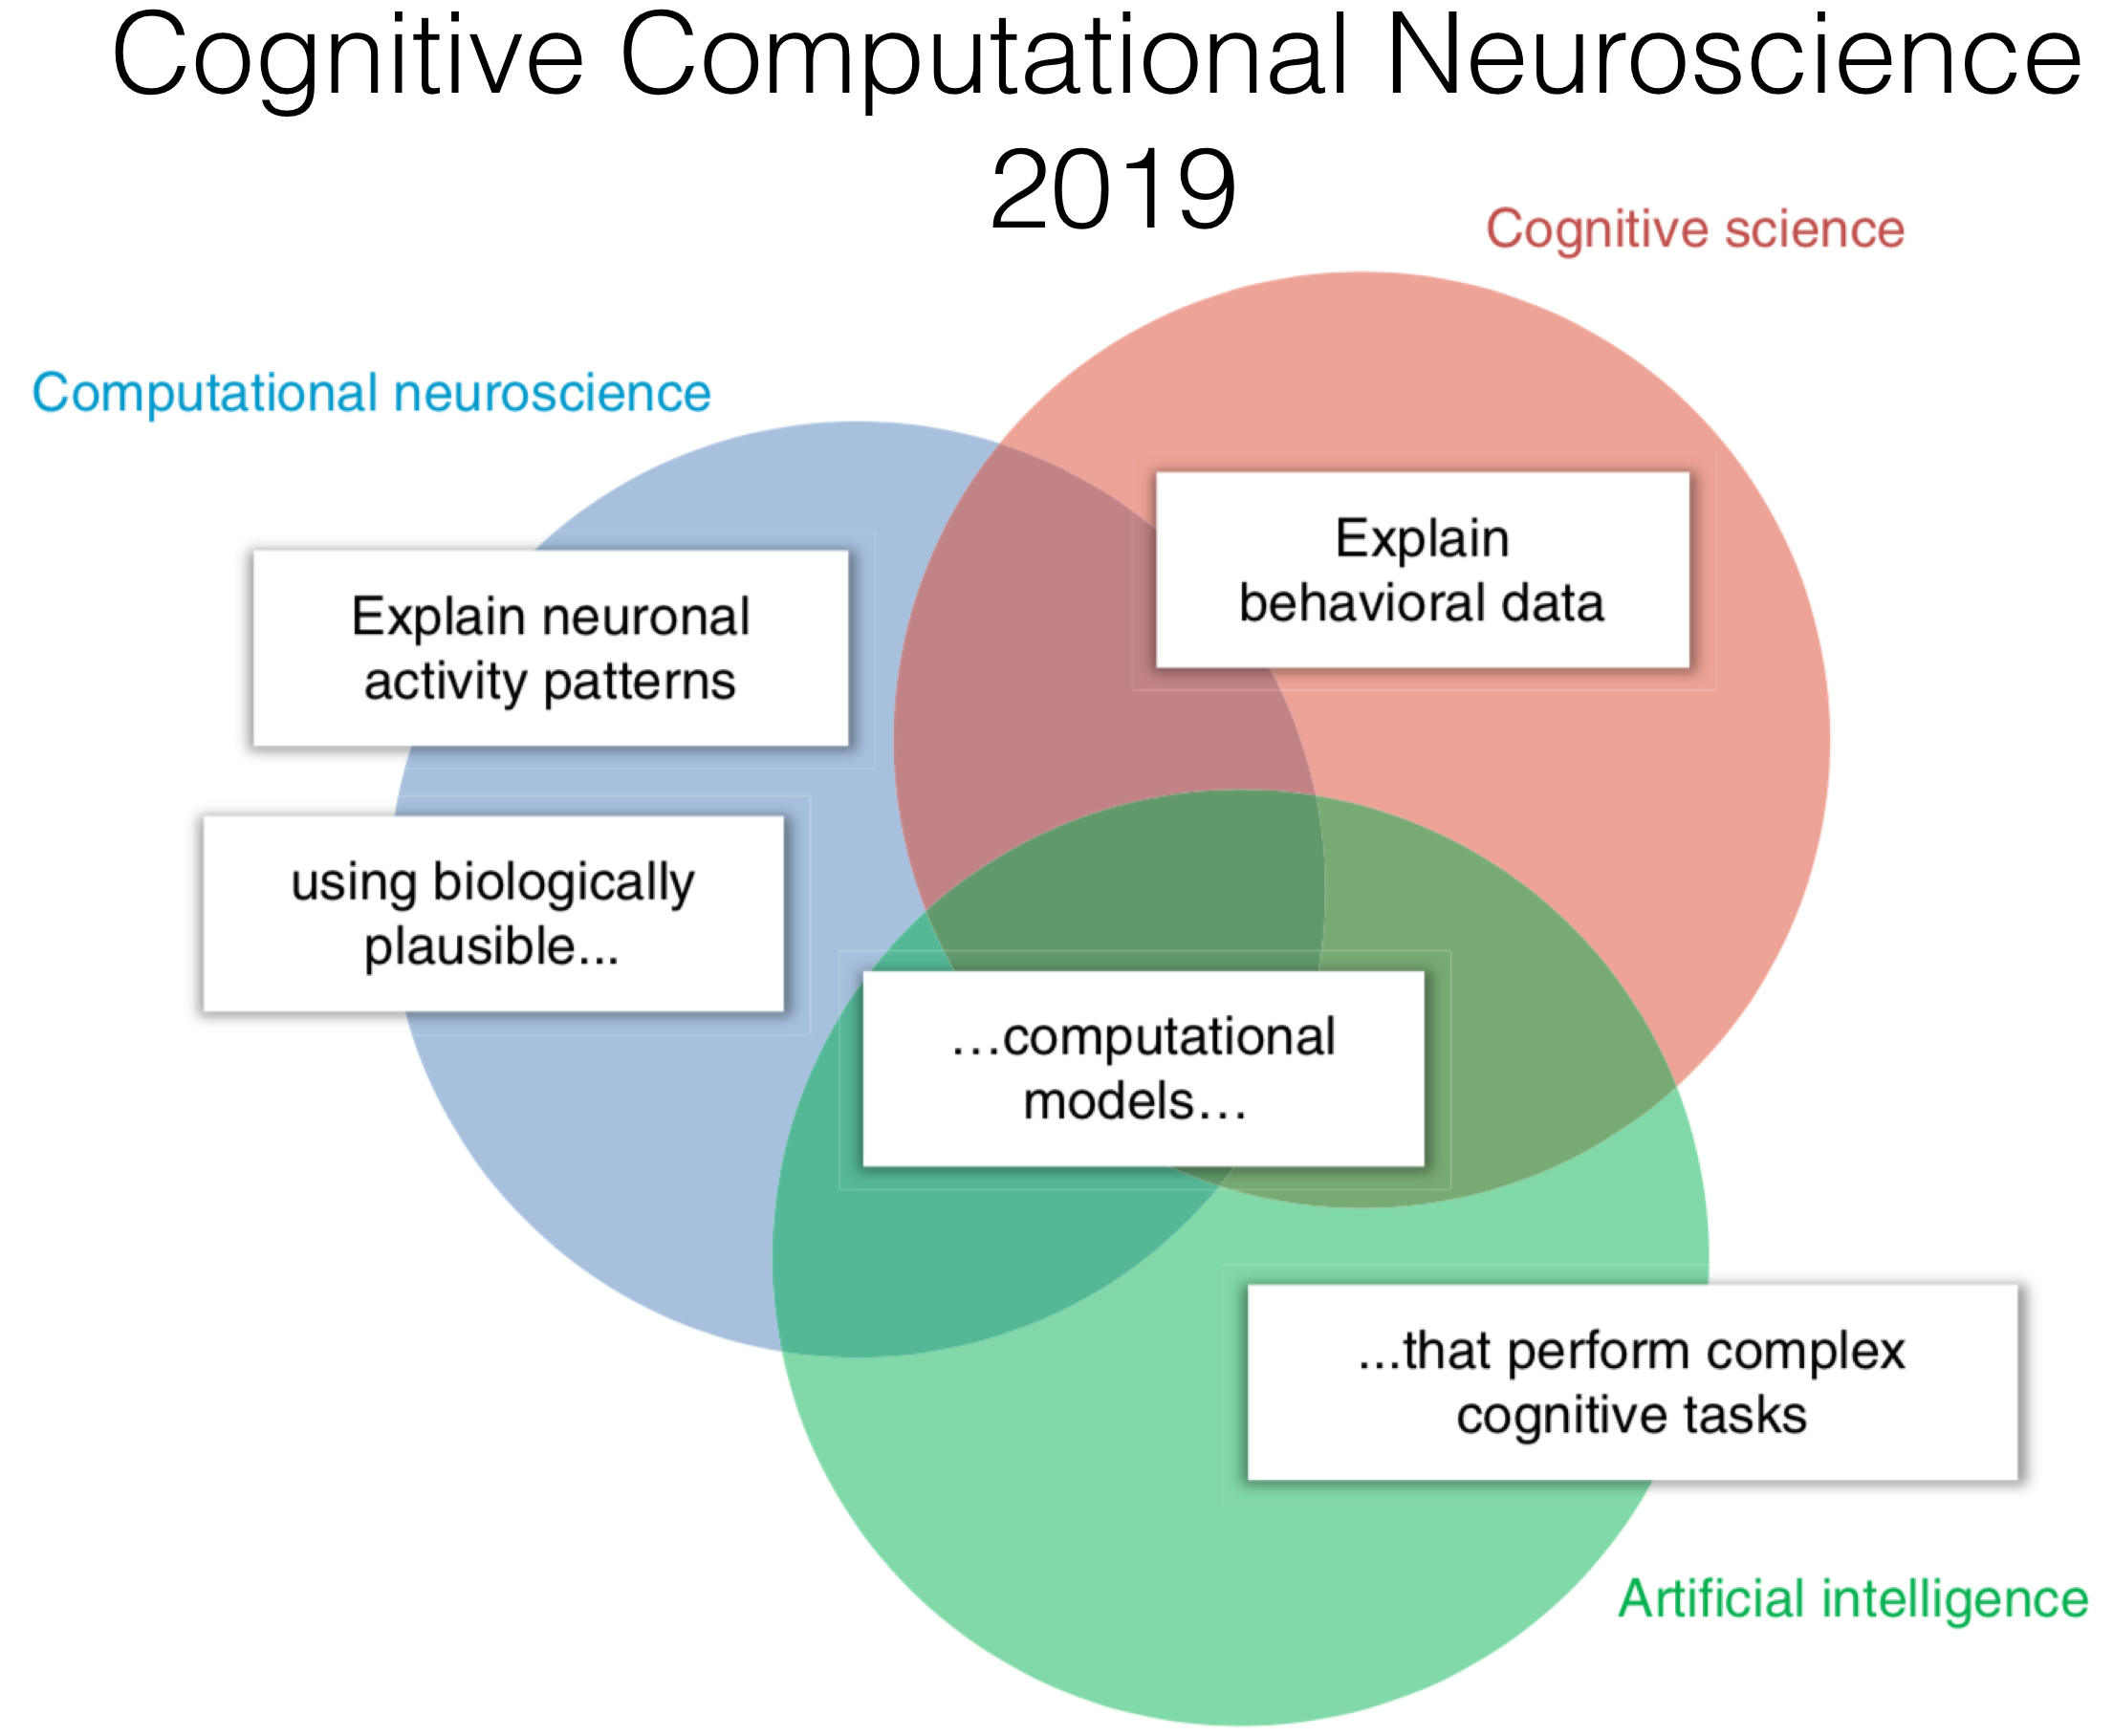 Computational Neuroscience Png - Cognitive Computational Neuroscience 2019 - A Mini-Report - Rob's ...